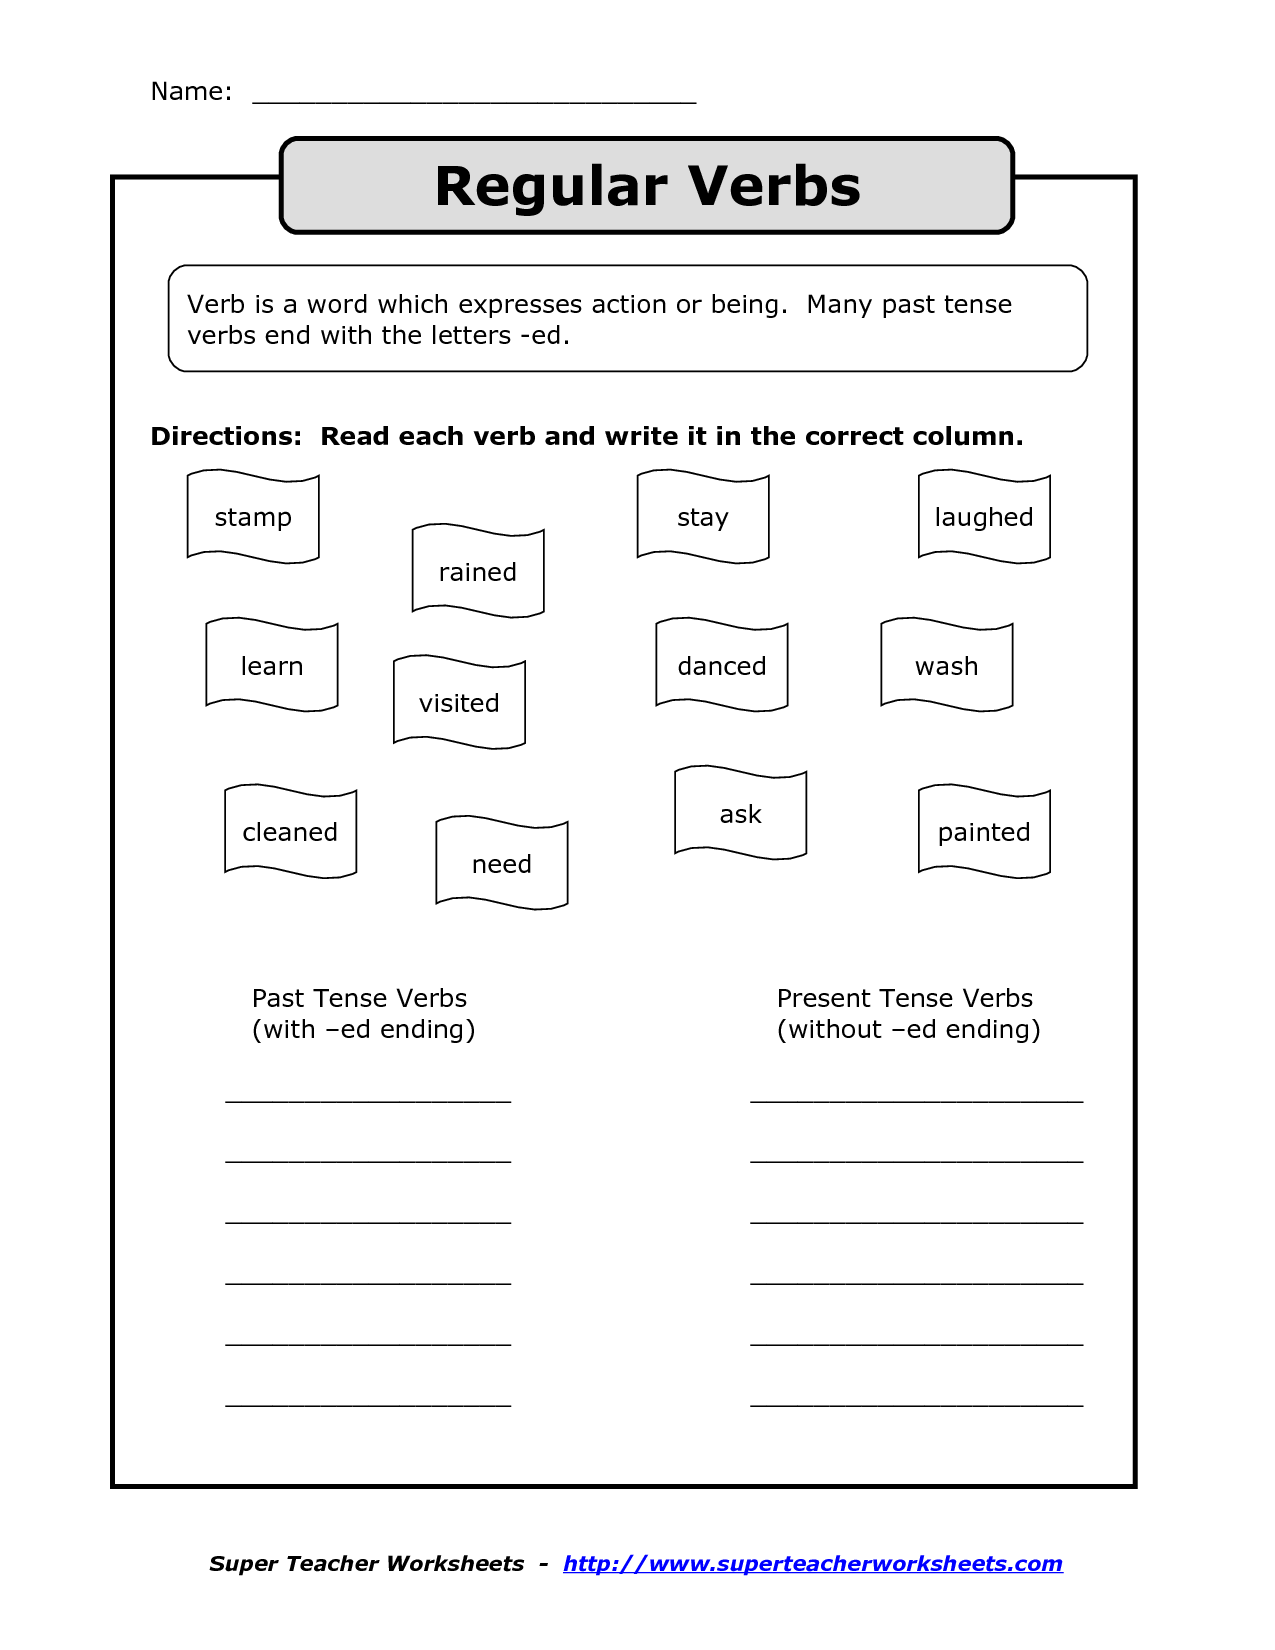 18 Best Images Of Past Tense Verbs Worksheets